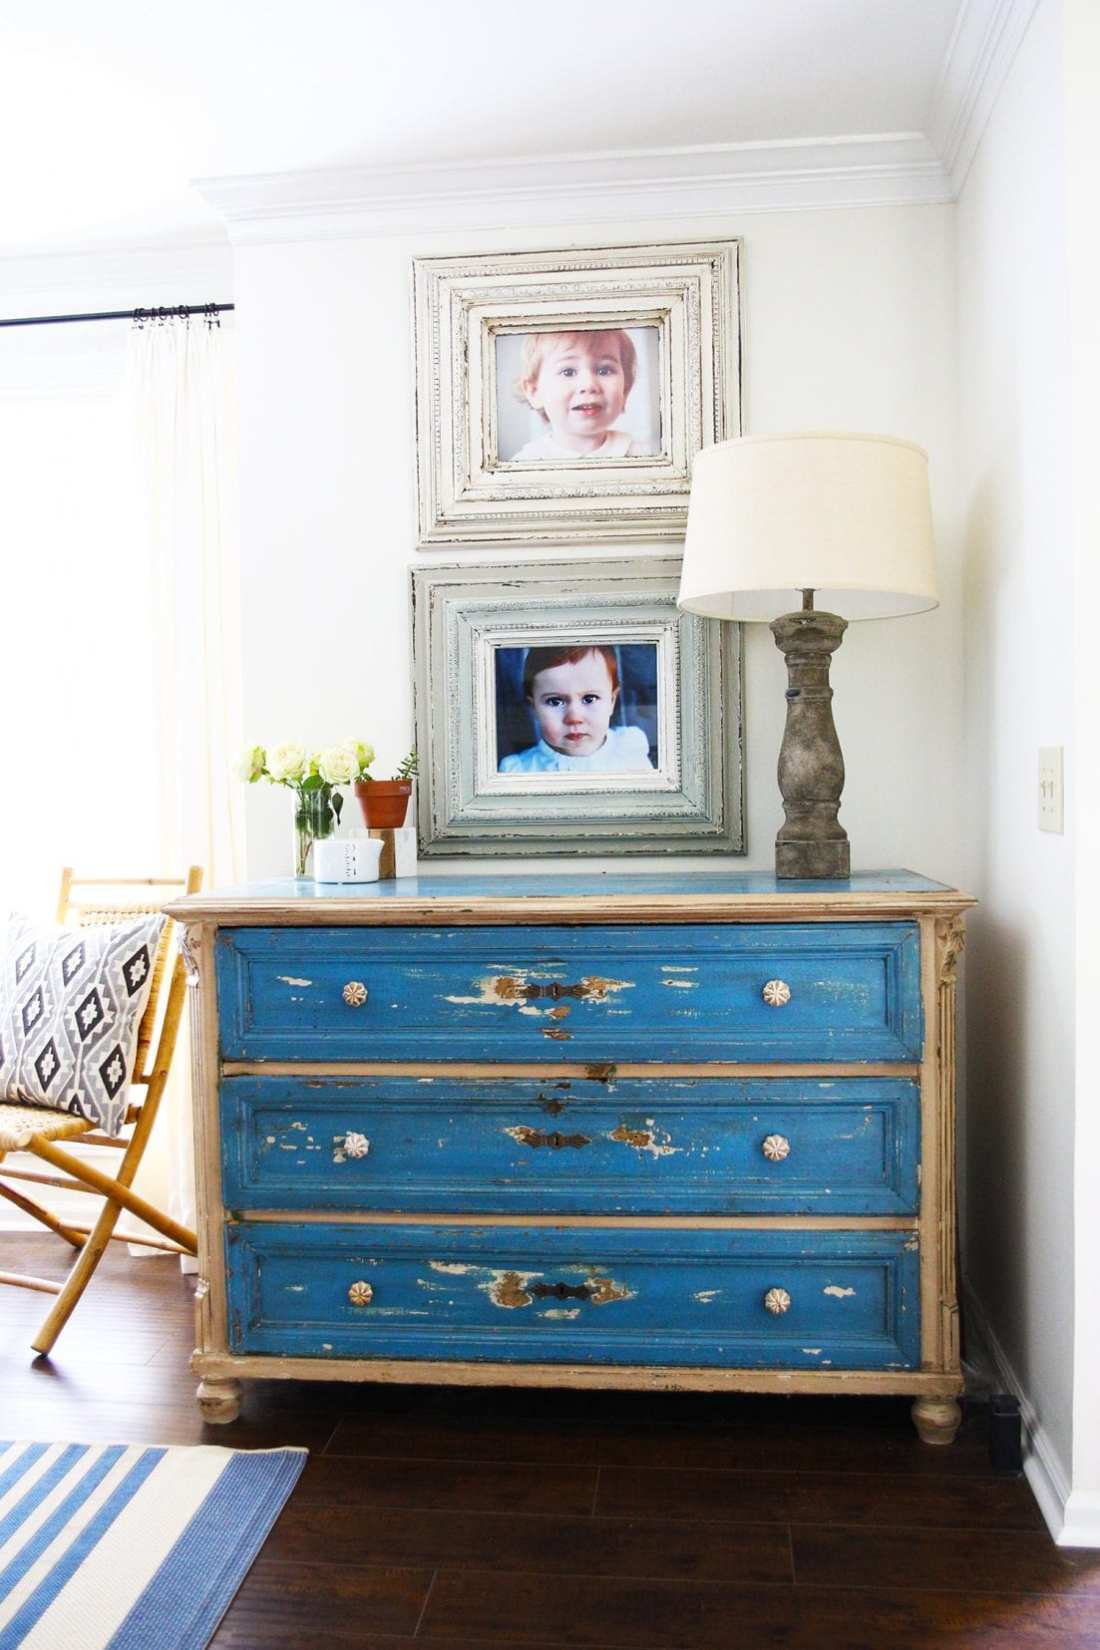 10 foolproof decorating tips - accent pieces